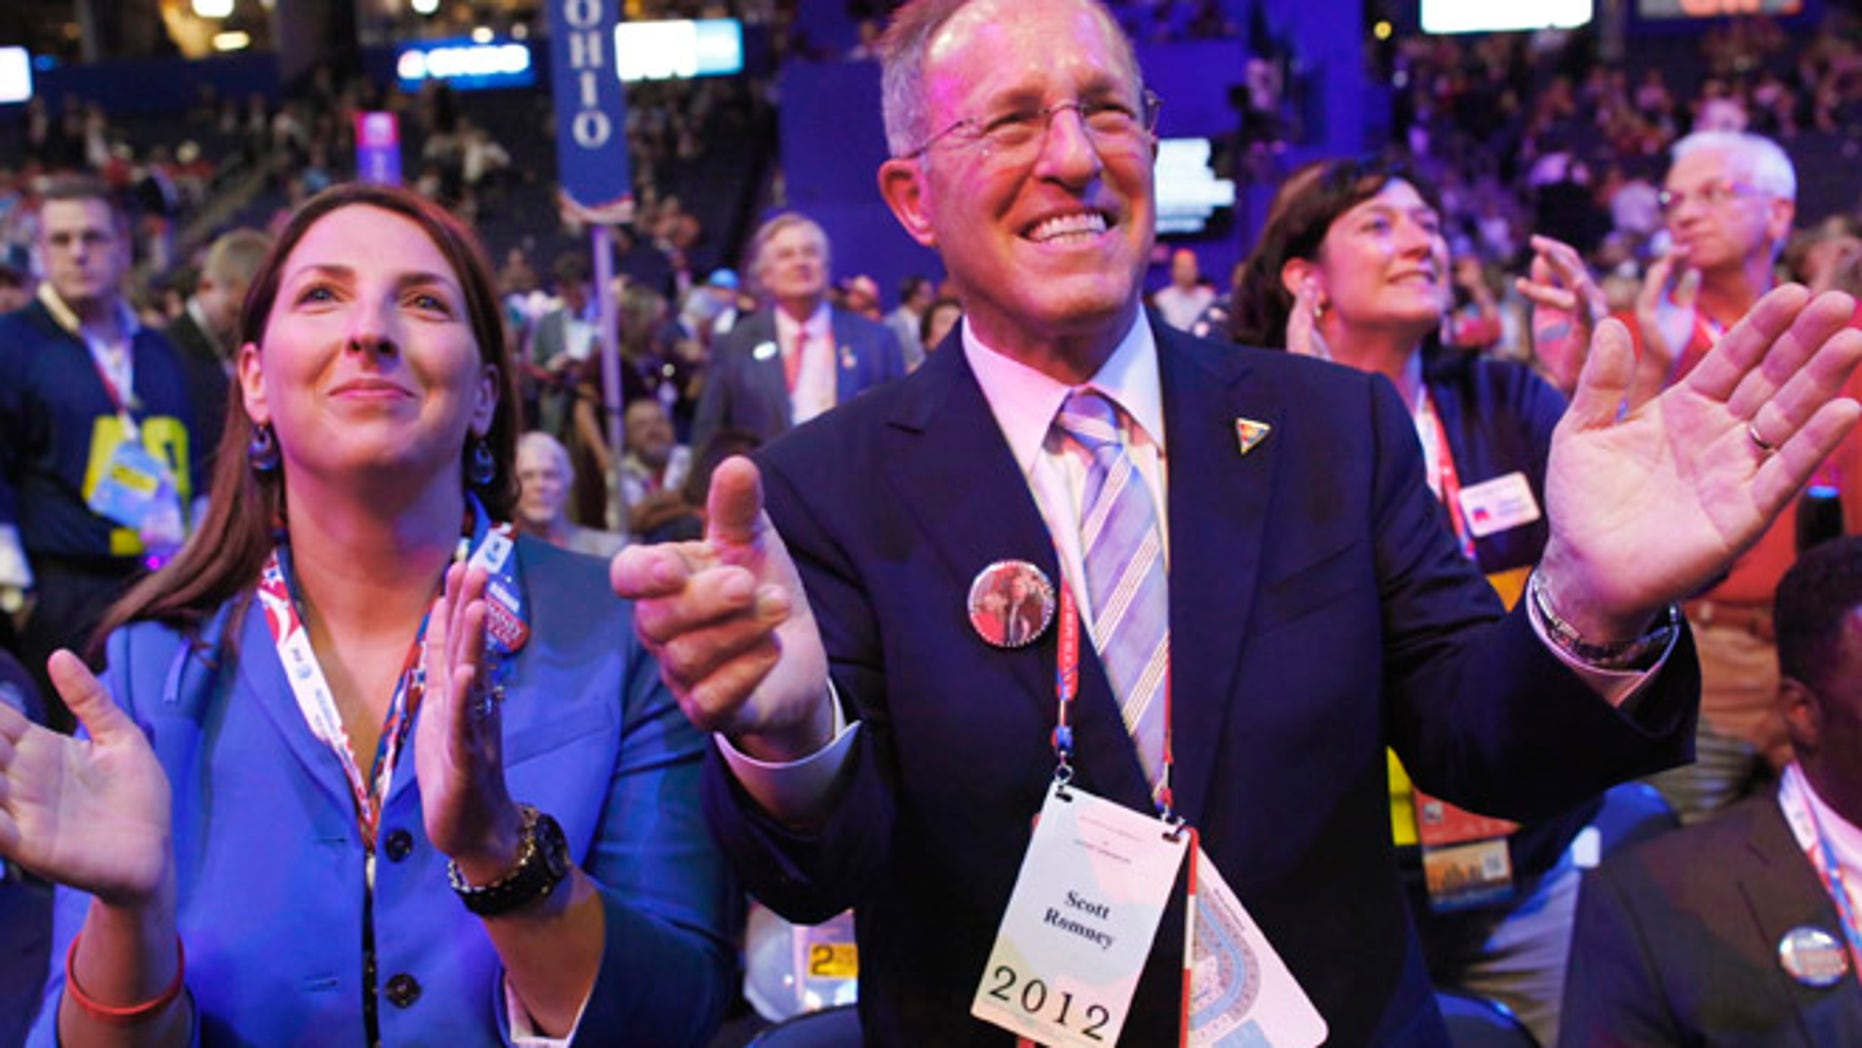 August 28, 2012: Scott Romney, brother of Republican presidential candidate Mitt Romney, applauds with his daughter Ronna during the second day of the Republican National Convention in Tampa, Florida.